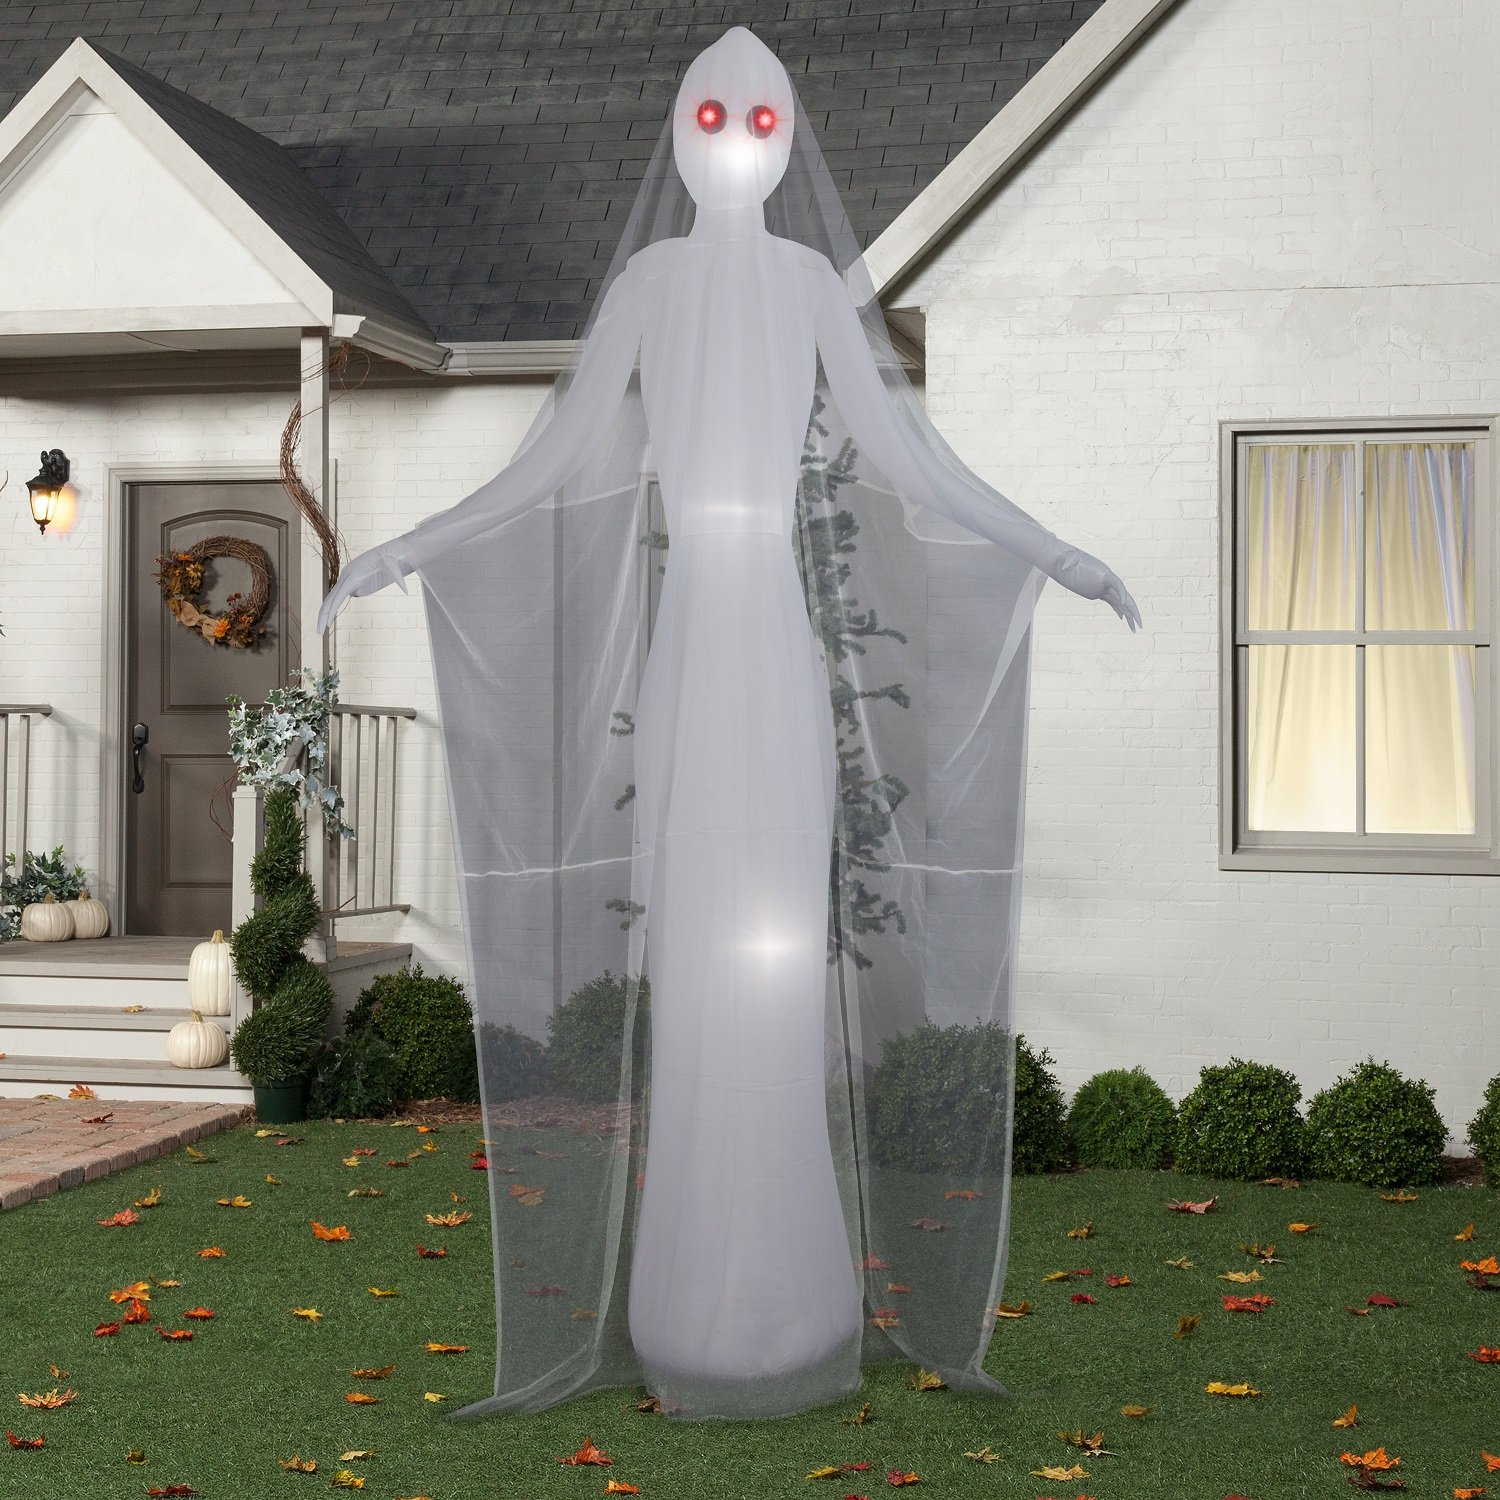 Halloween Inflatable 12' Giant Spooky Ghost Spirit Woman By Gemmy